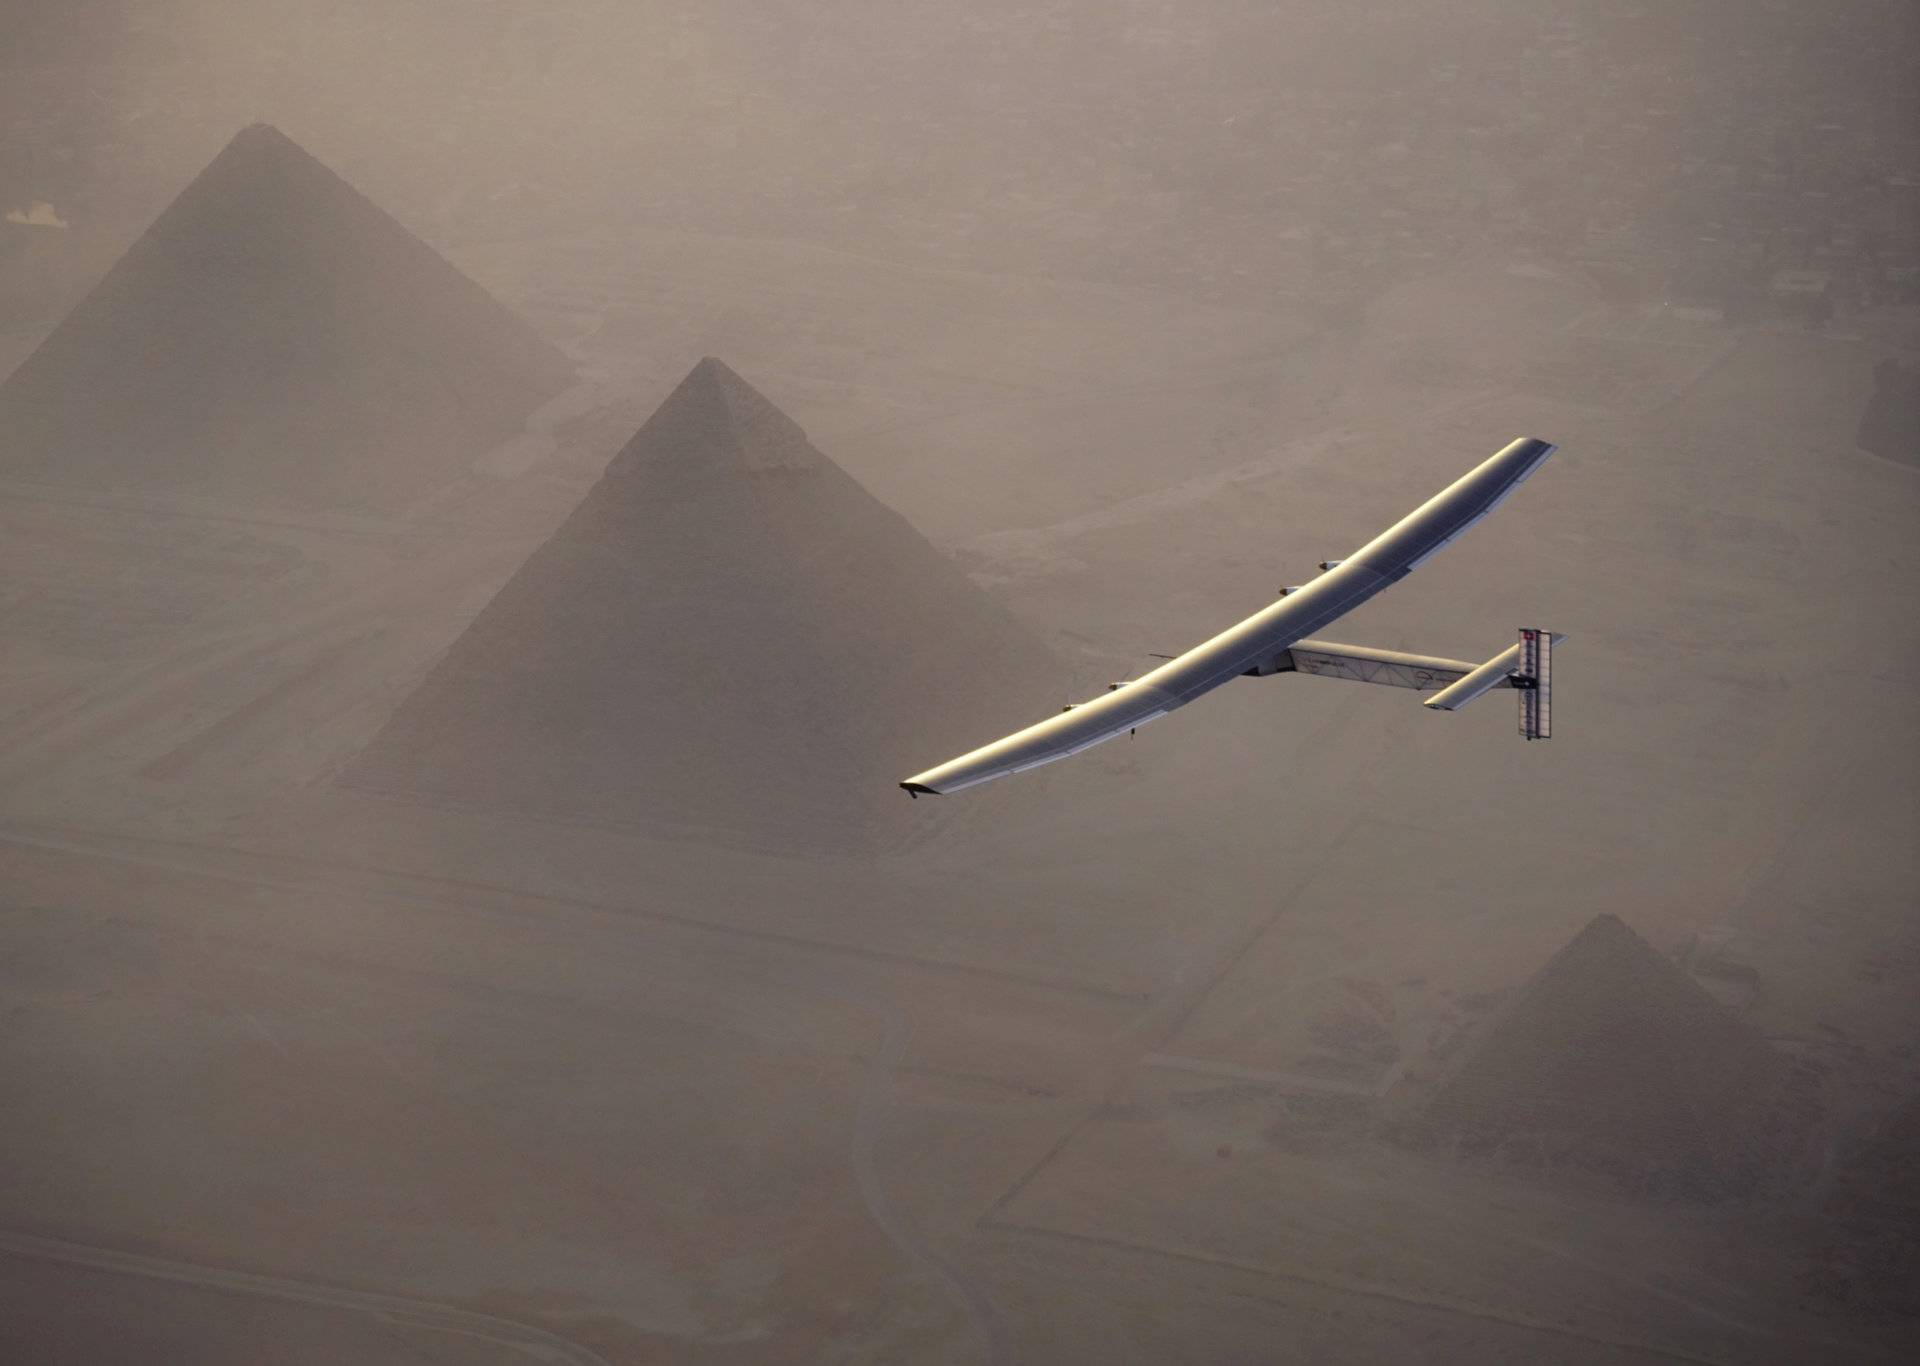 Solar Impulse 2, the solar powered plane, piloted by Swiss pioneer Andre Borschberg is seen during the flyover of the pyramids of Giza on July 13, 2016 prior to the landing in Cairo